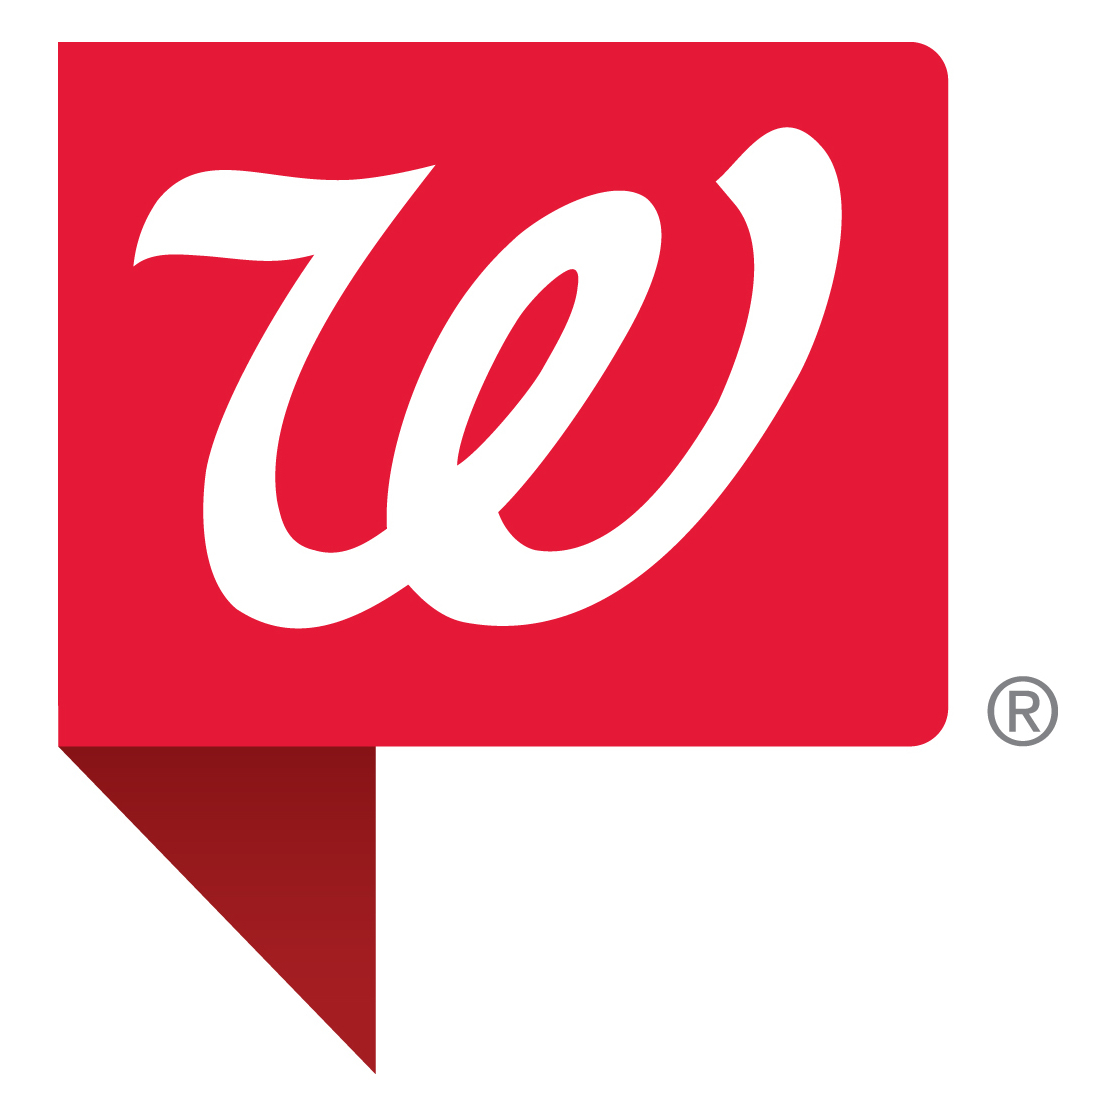 Walgreens Pharmacy at Medical City Dallas Hospital